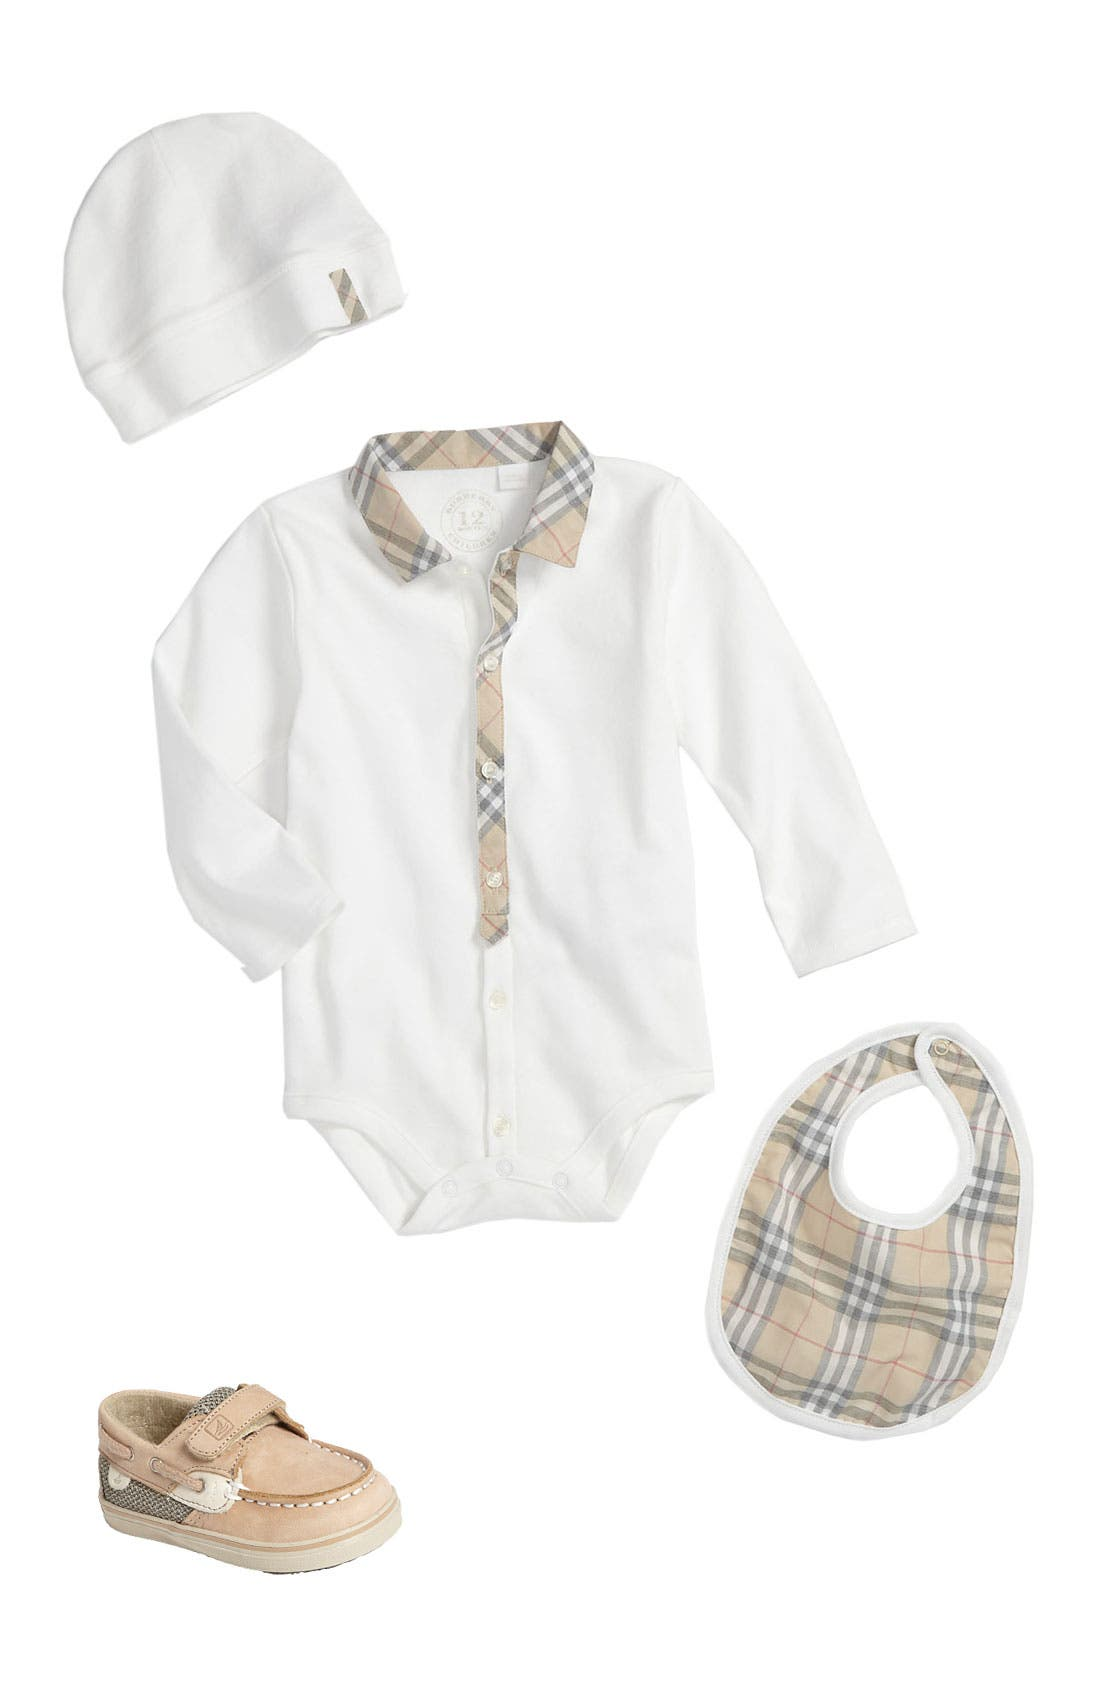 Alternate Image 1 Selected - Burberry Bodysuit & Sperry Top-Sider® Boat Shoe (Infant)